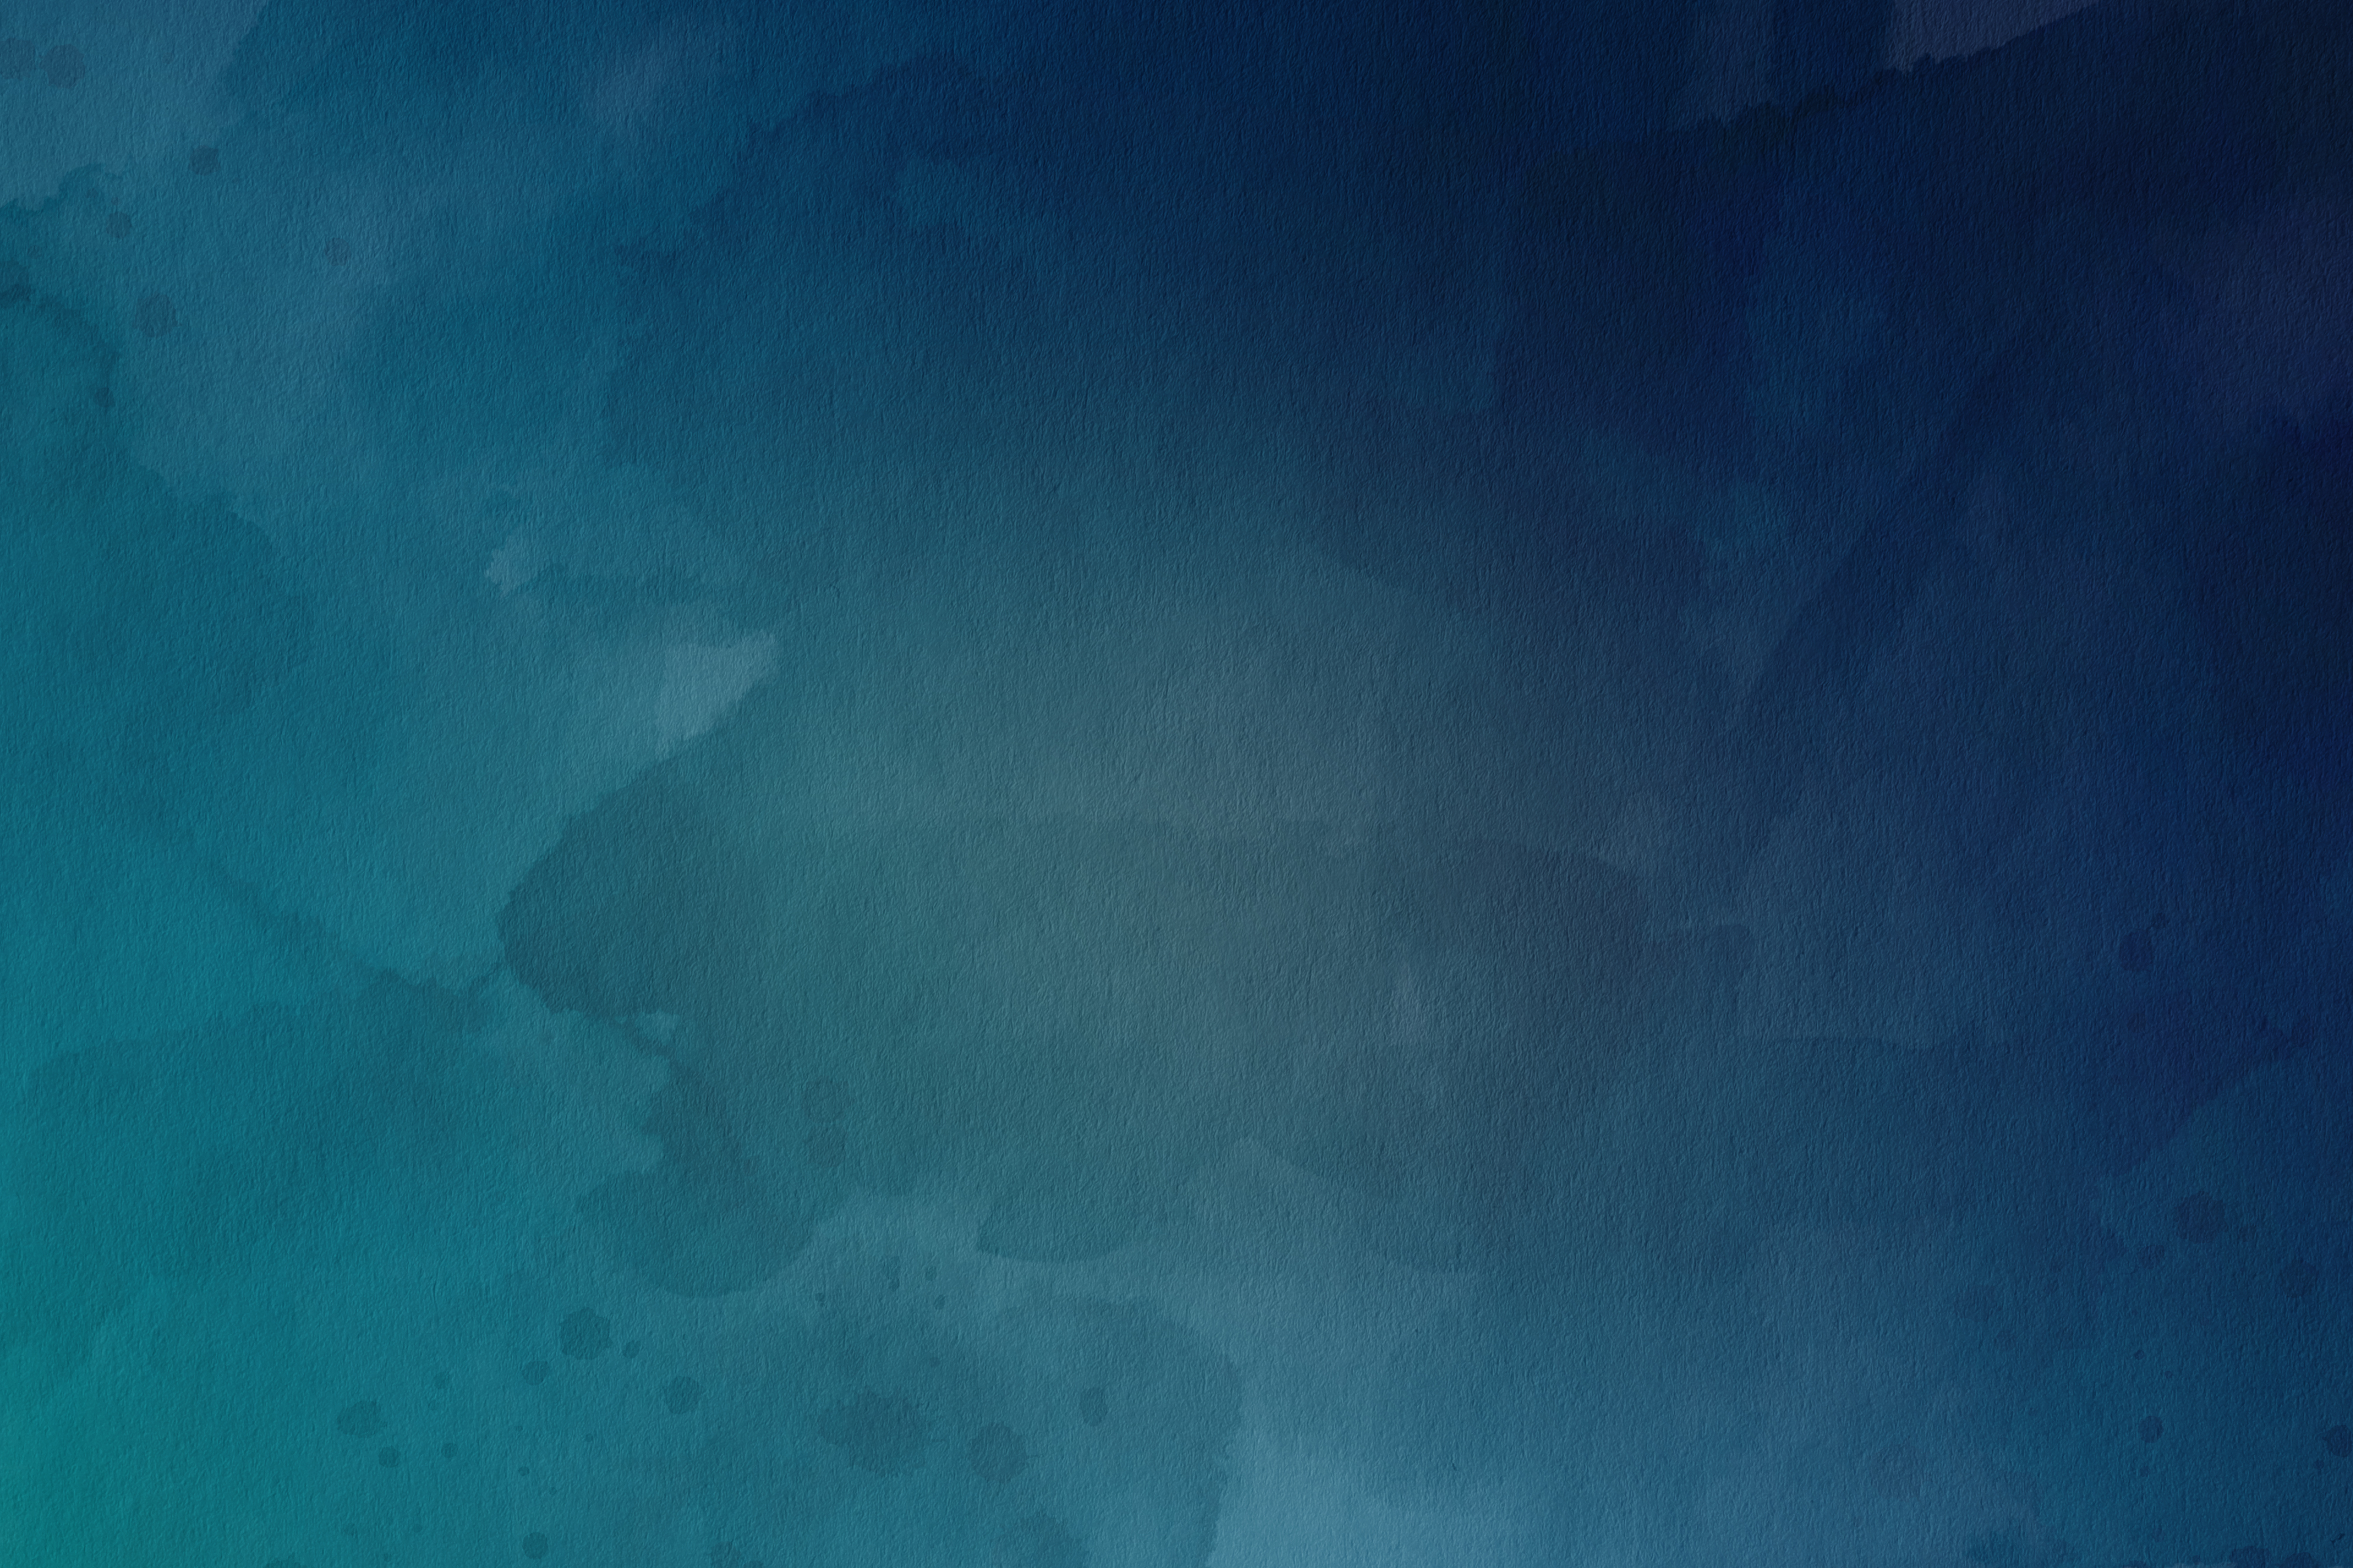 dark blue watercolor background material  poster